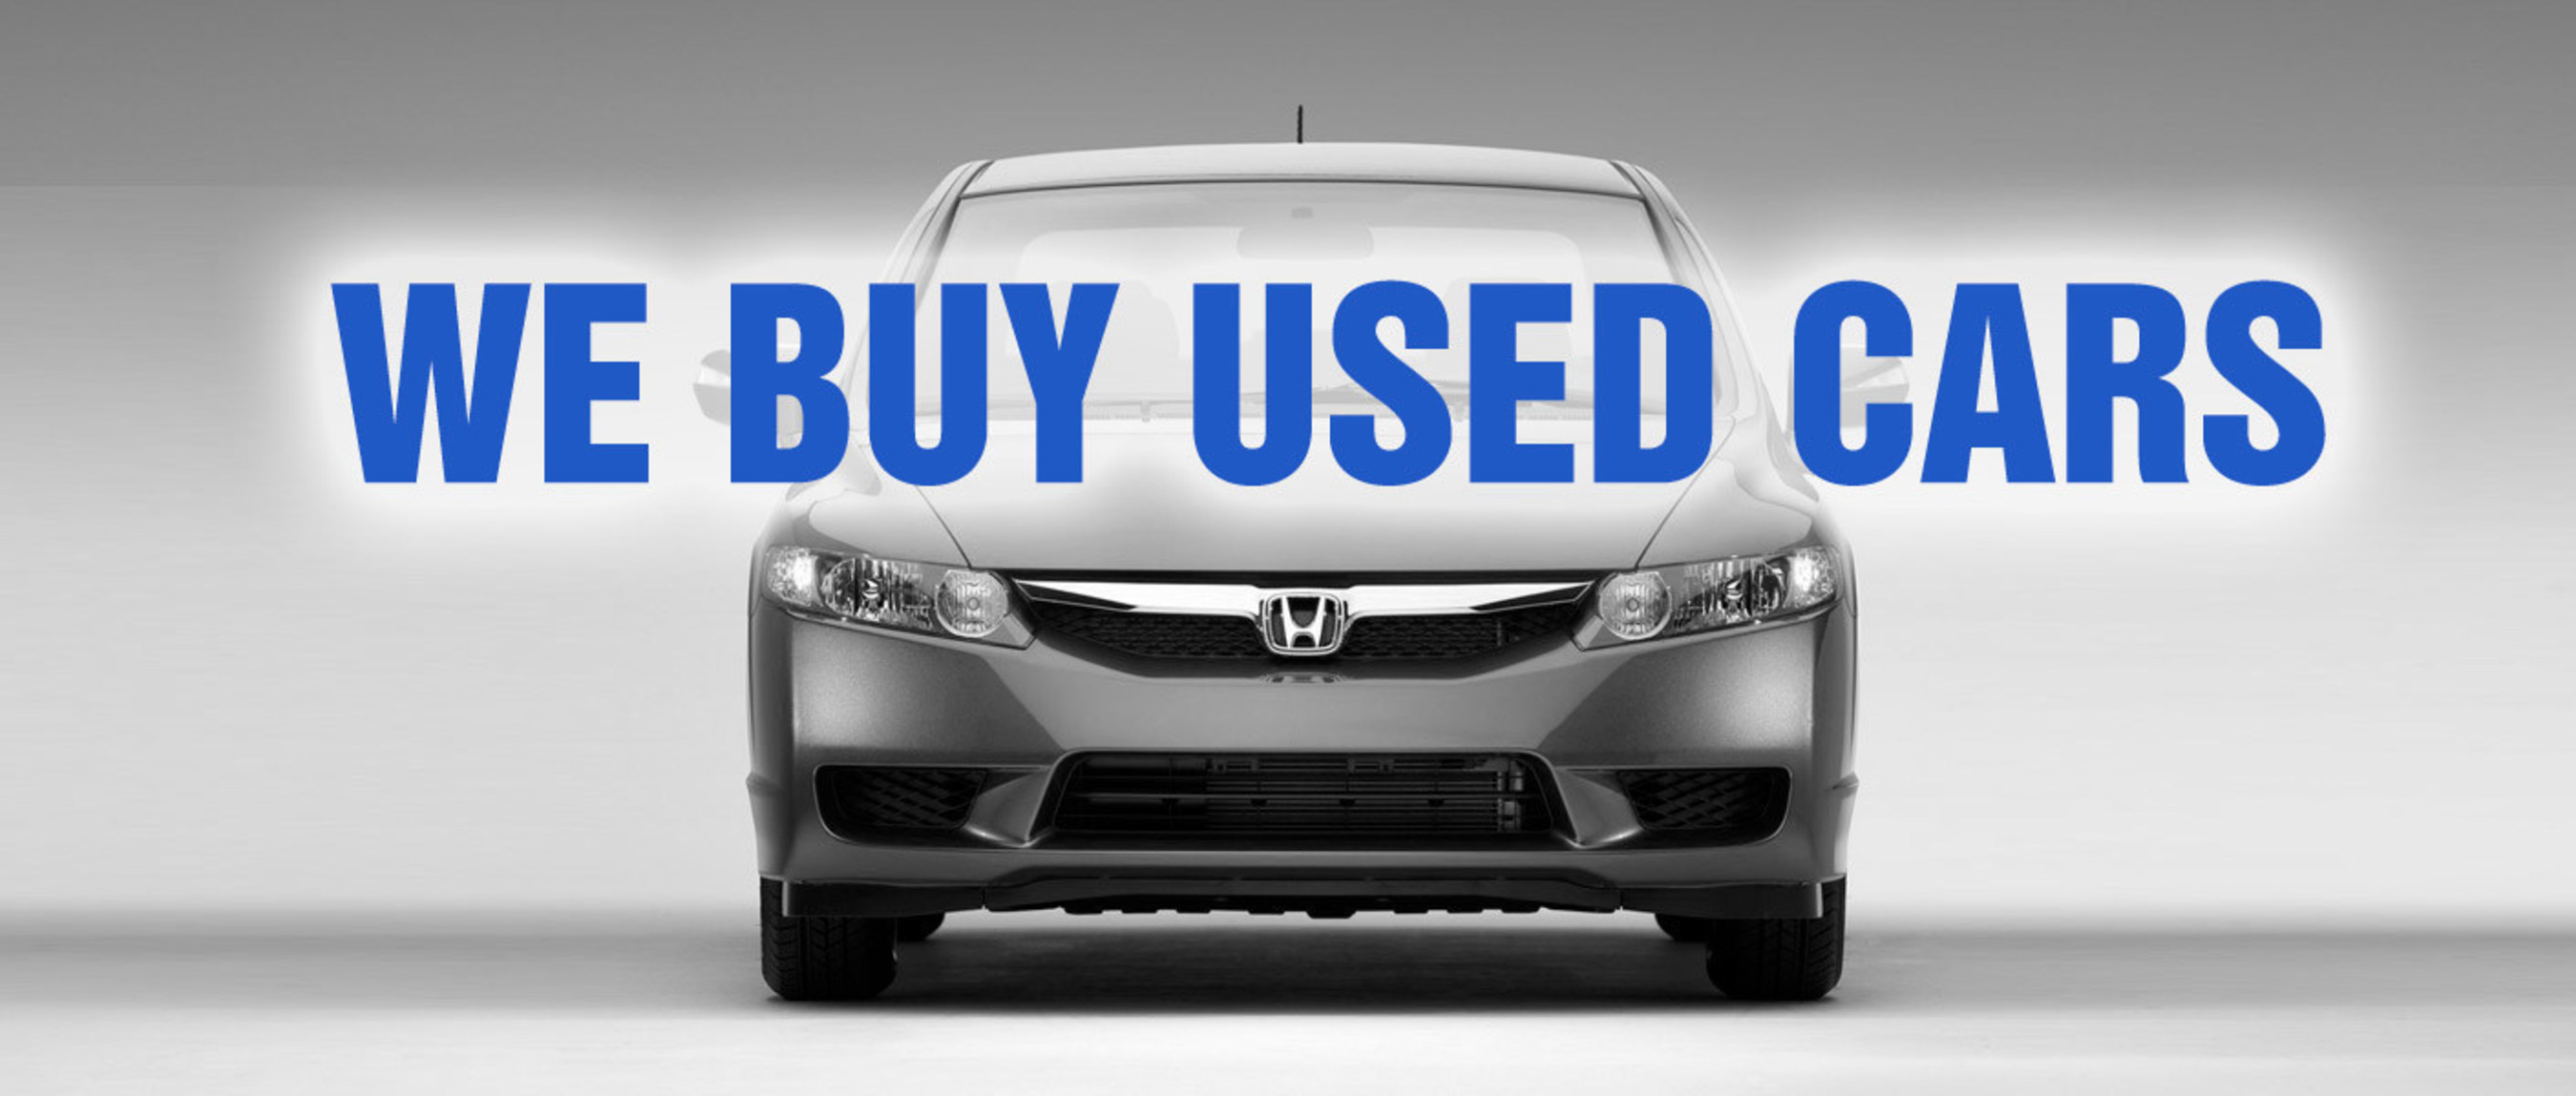 Bill Gatton Honda purchases used vehicles to offer larger inventory